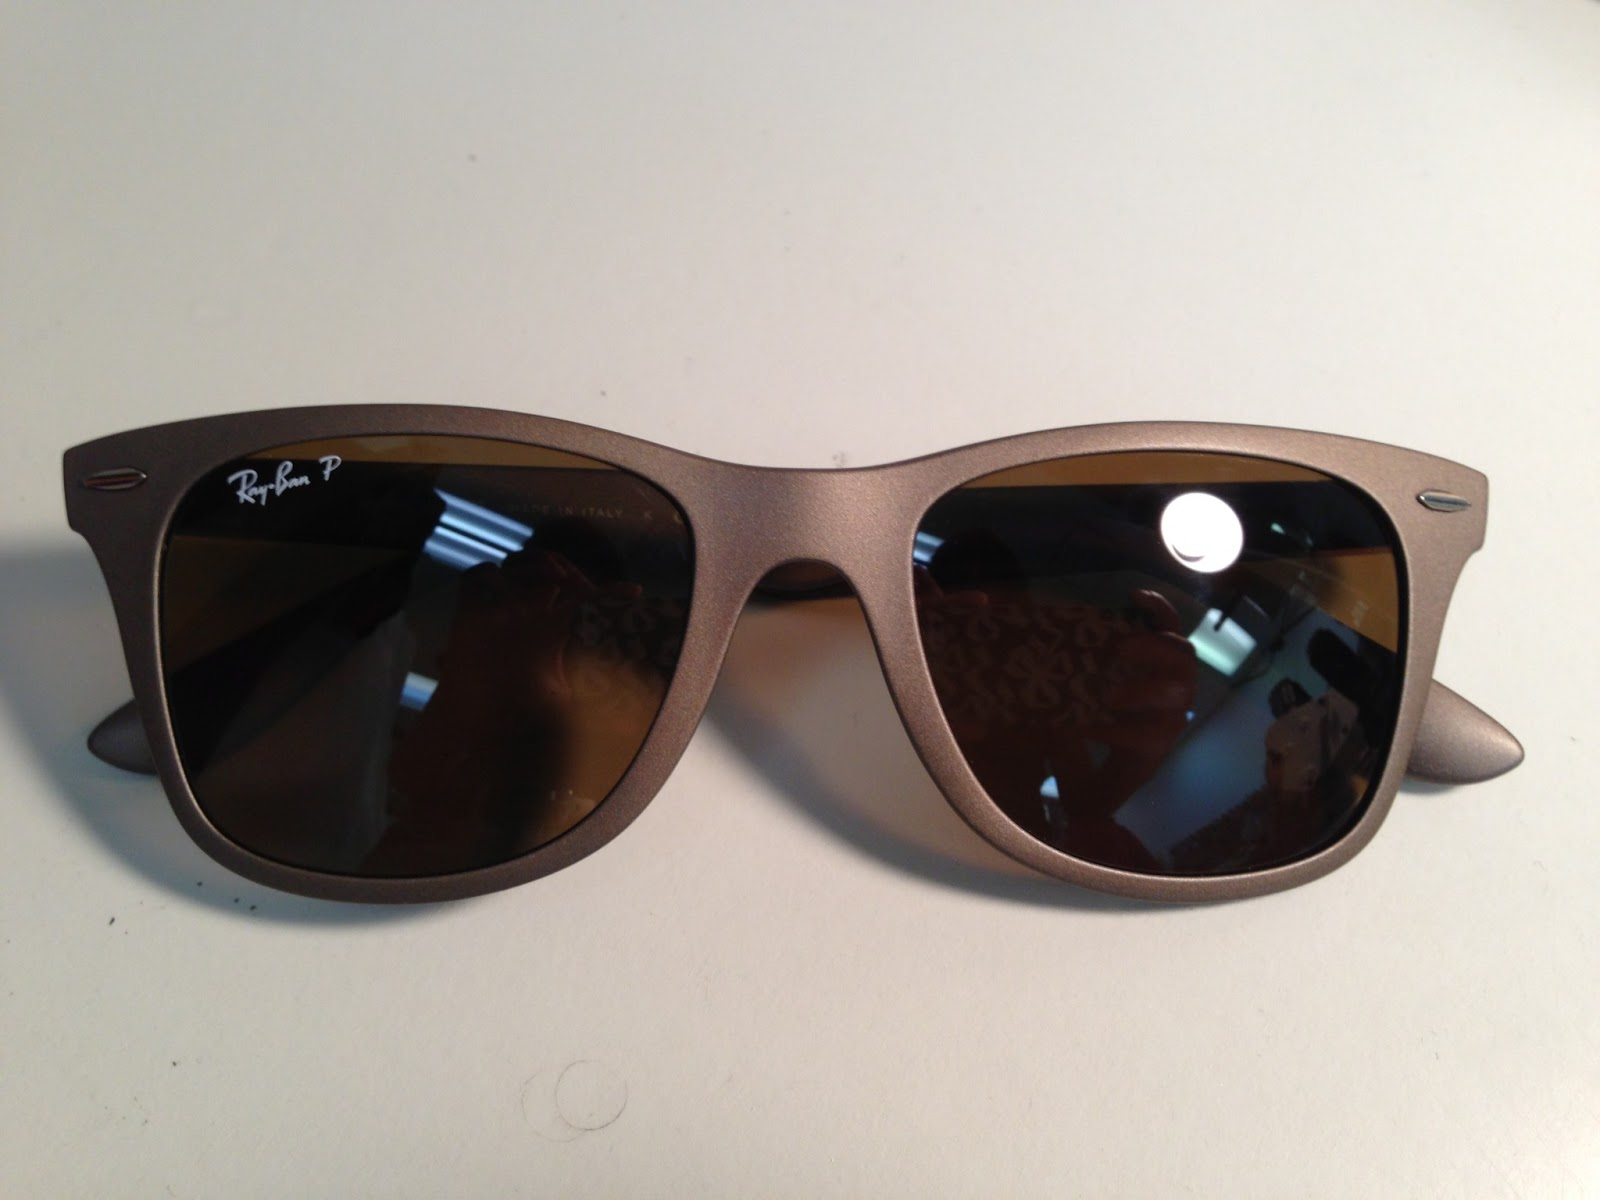 ray ban new wayfarer review b06c  If you're that clumsy and easy forgetting things like me, Ray-Ban Liteforce  Wayfarer are the perfect solution for you girls! I've recently got these  pairs